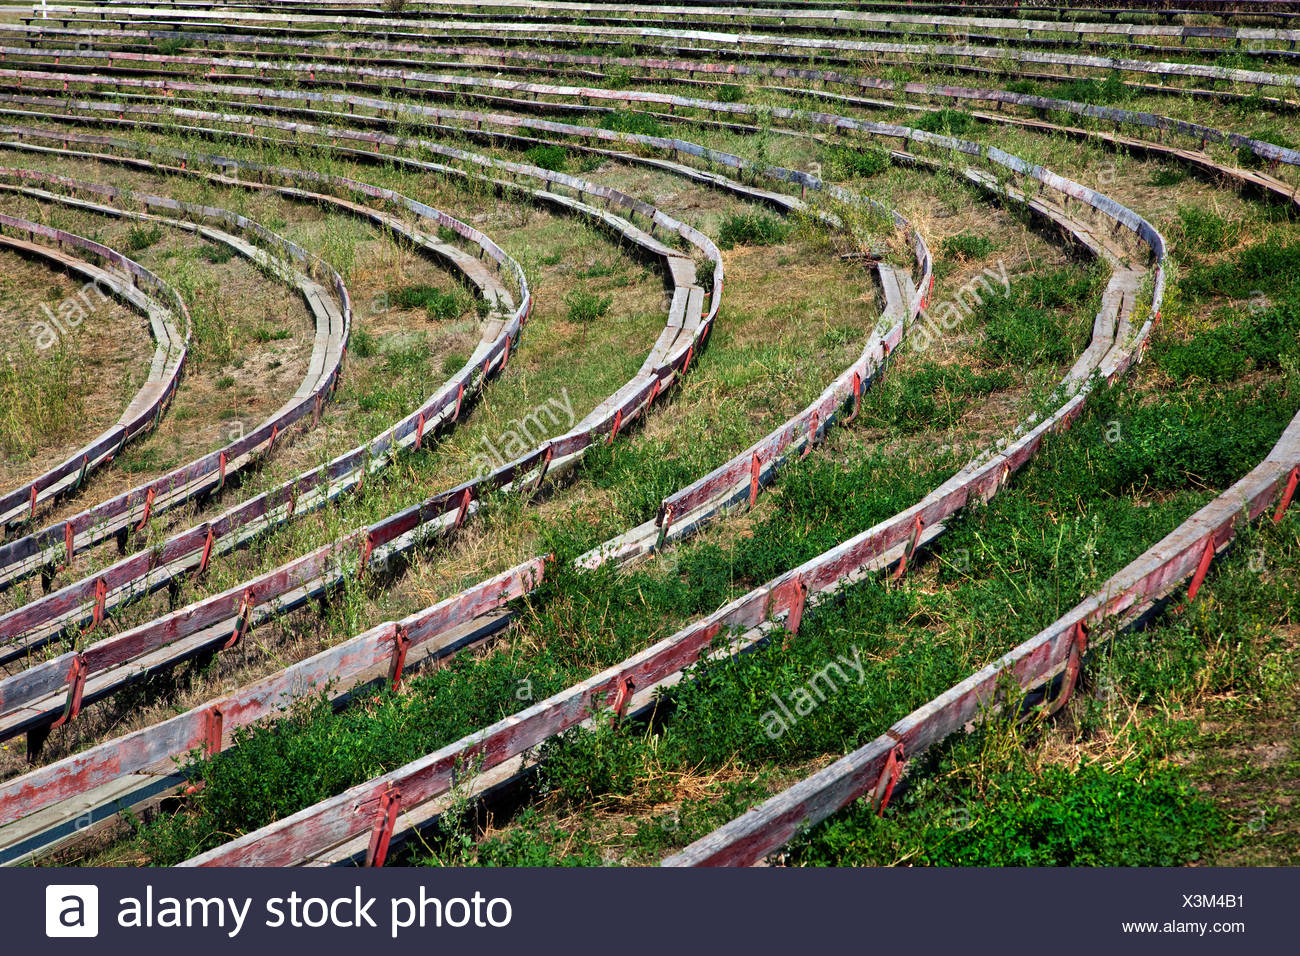 Seats in rodeo ground, Alberta, Canada - Stock Image